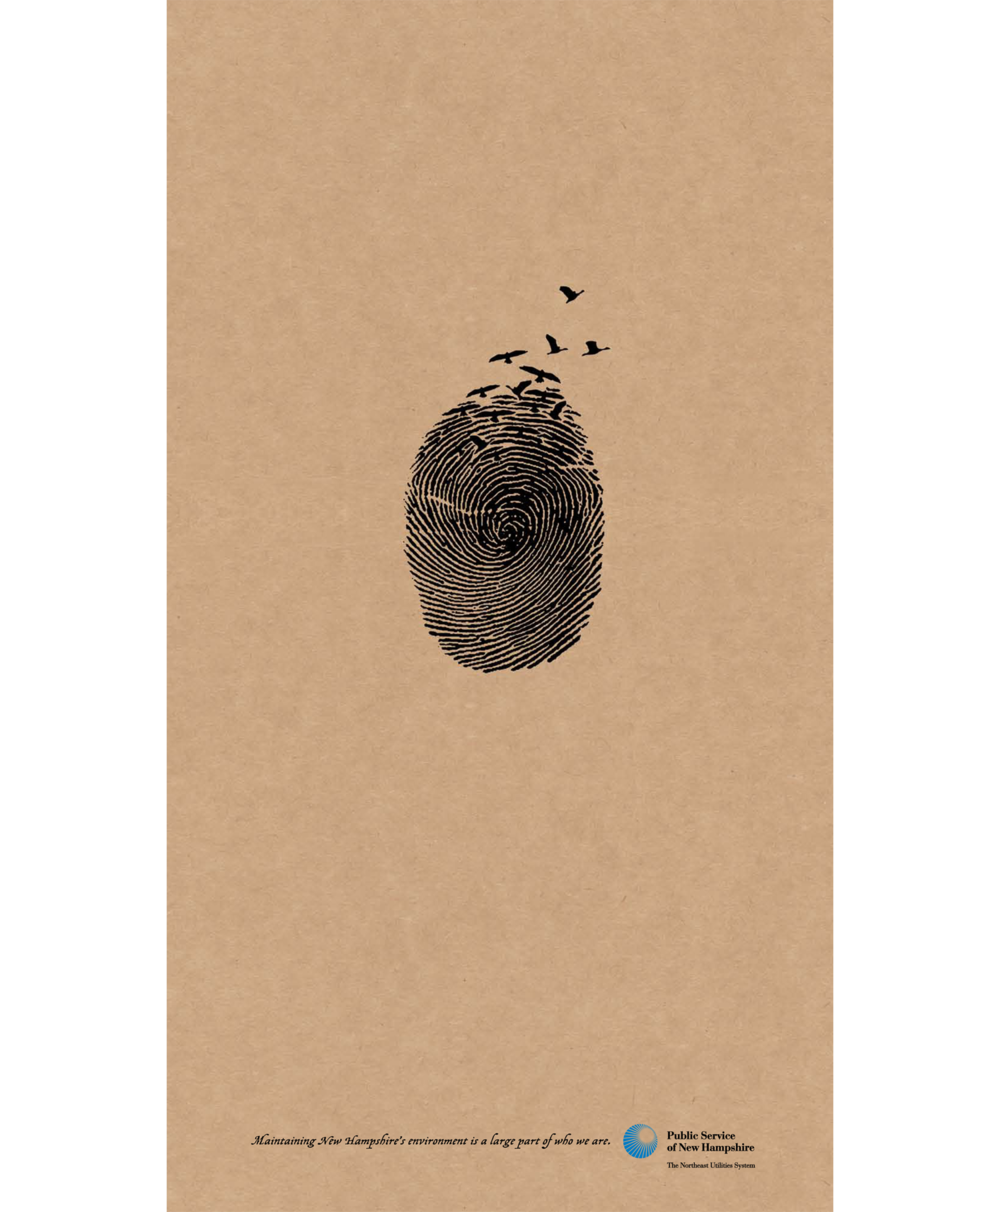 keith-manning-ad-psnh_fingerprints.png